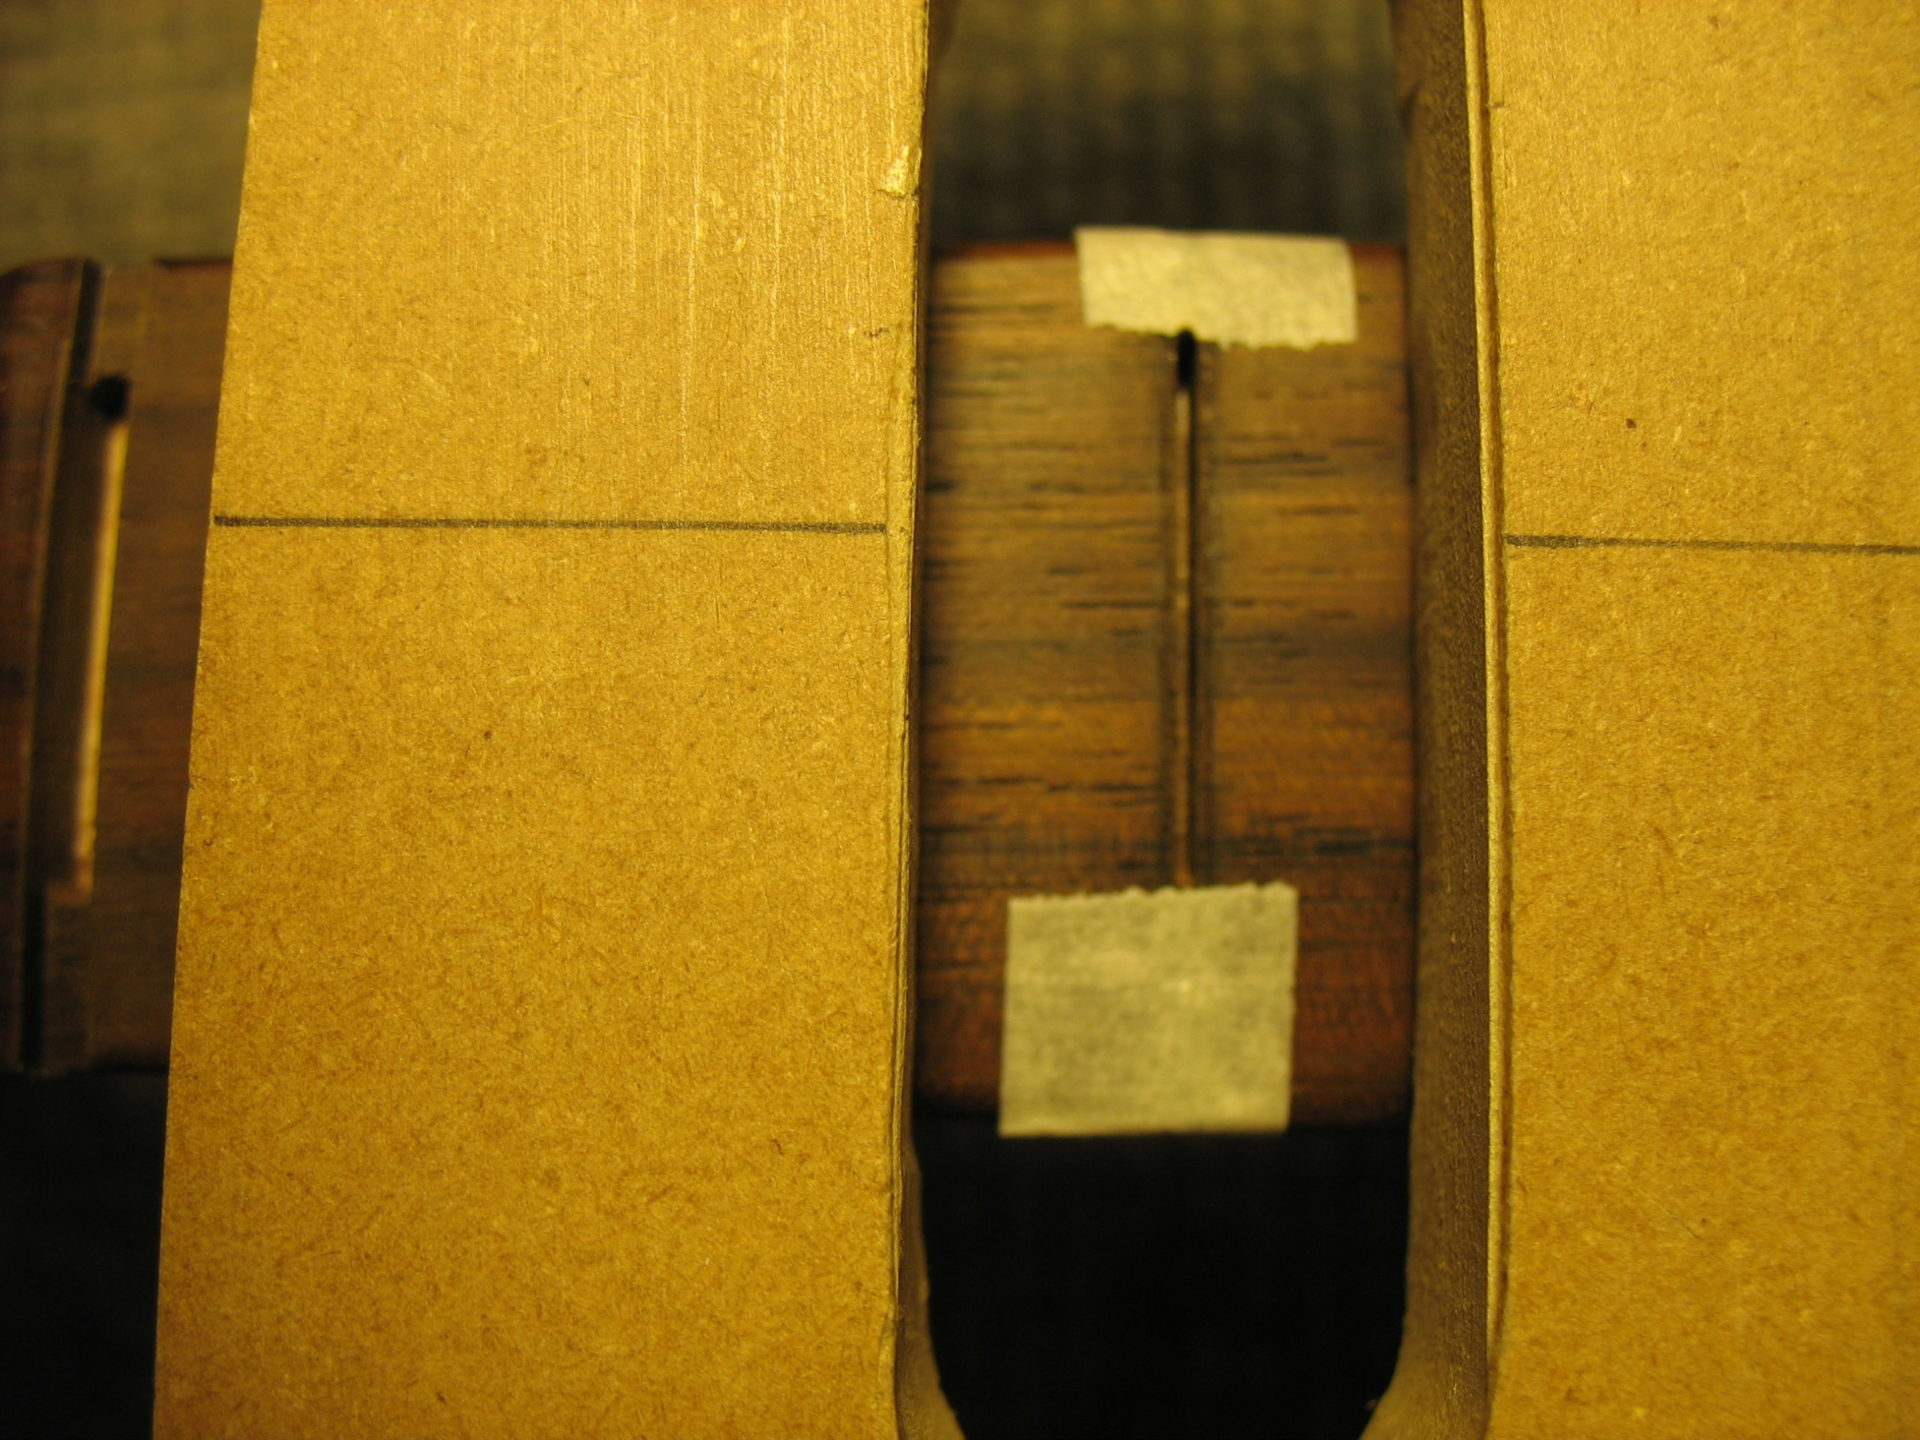 Removing the fretboard